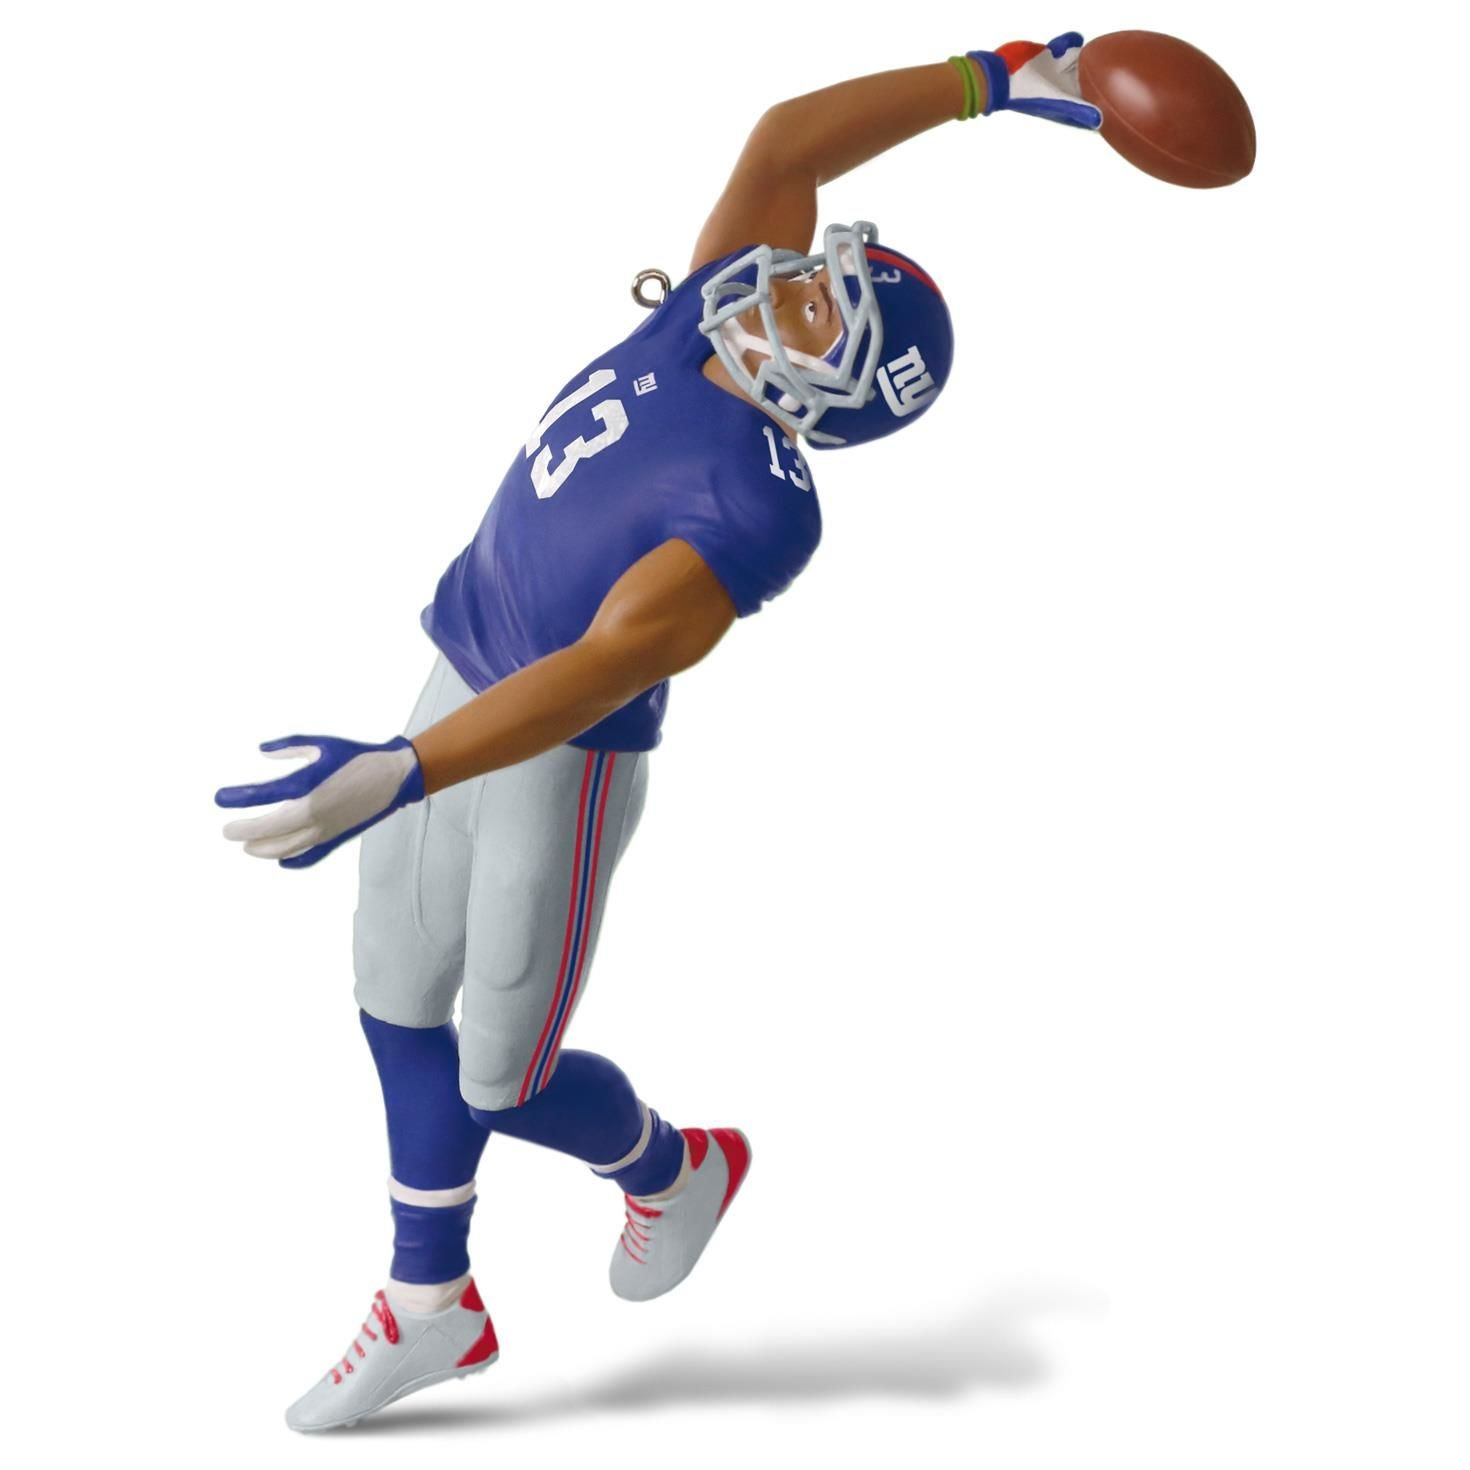 Amazon.com: Hallmark Odell Beckham Jr. New York Giants Ornament ...